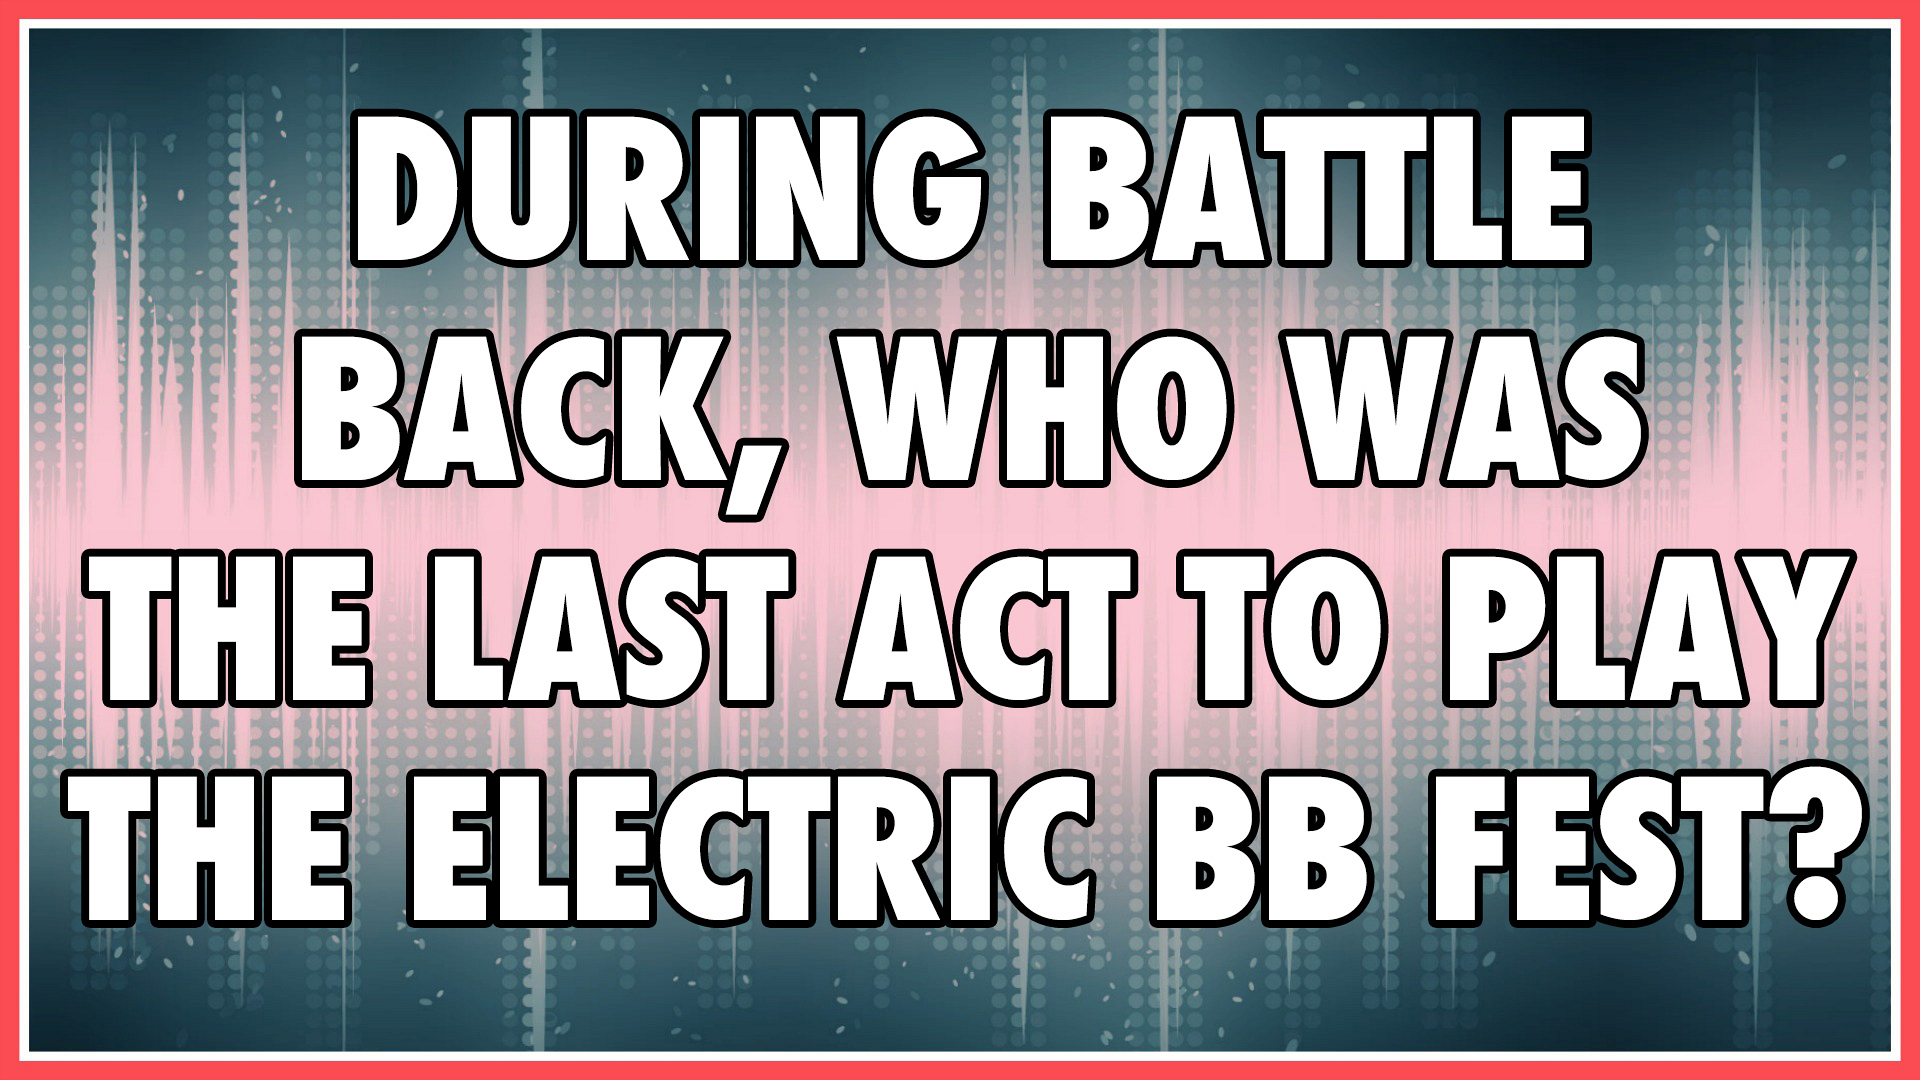 During the Battle Back competition, who was the last act to play the Electric BB Festival?